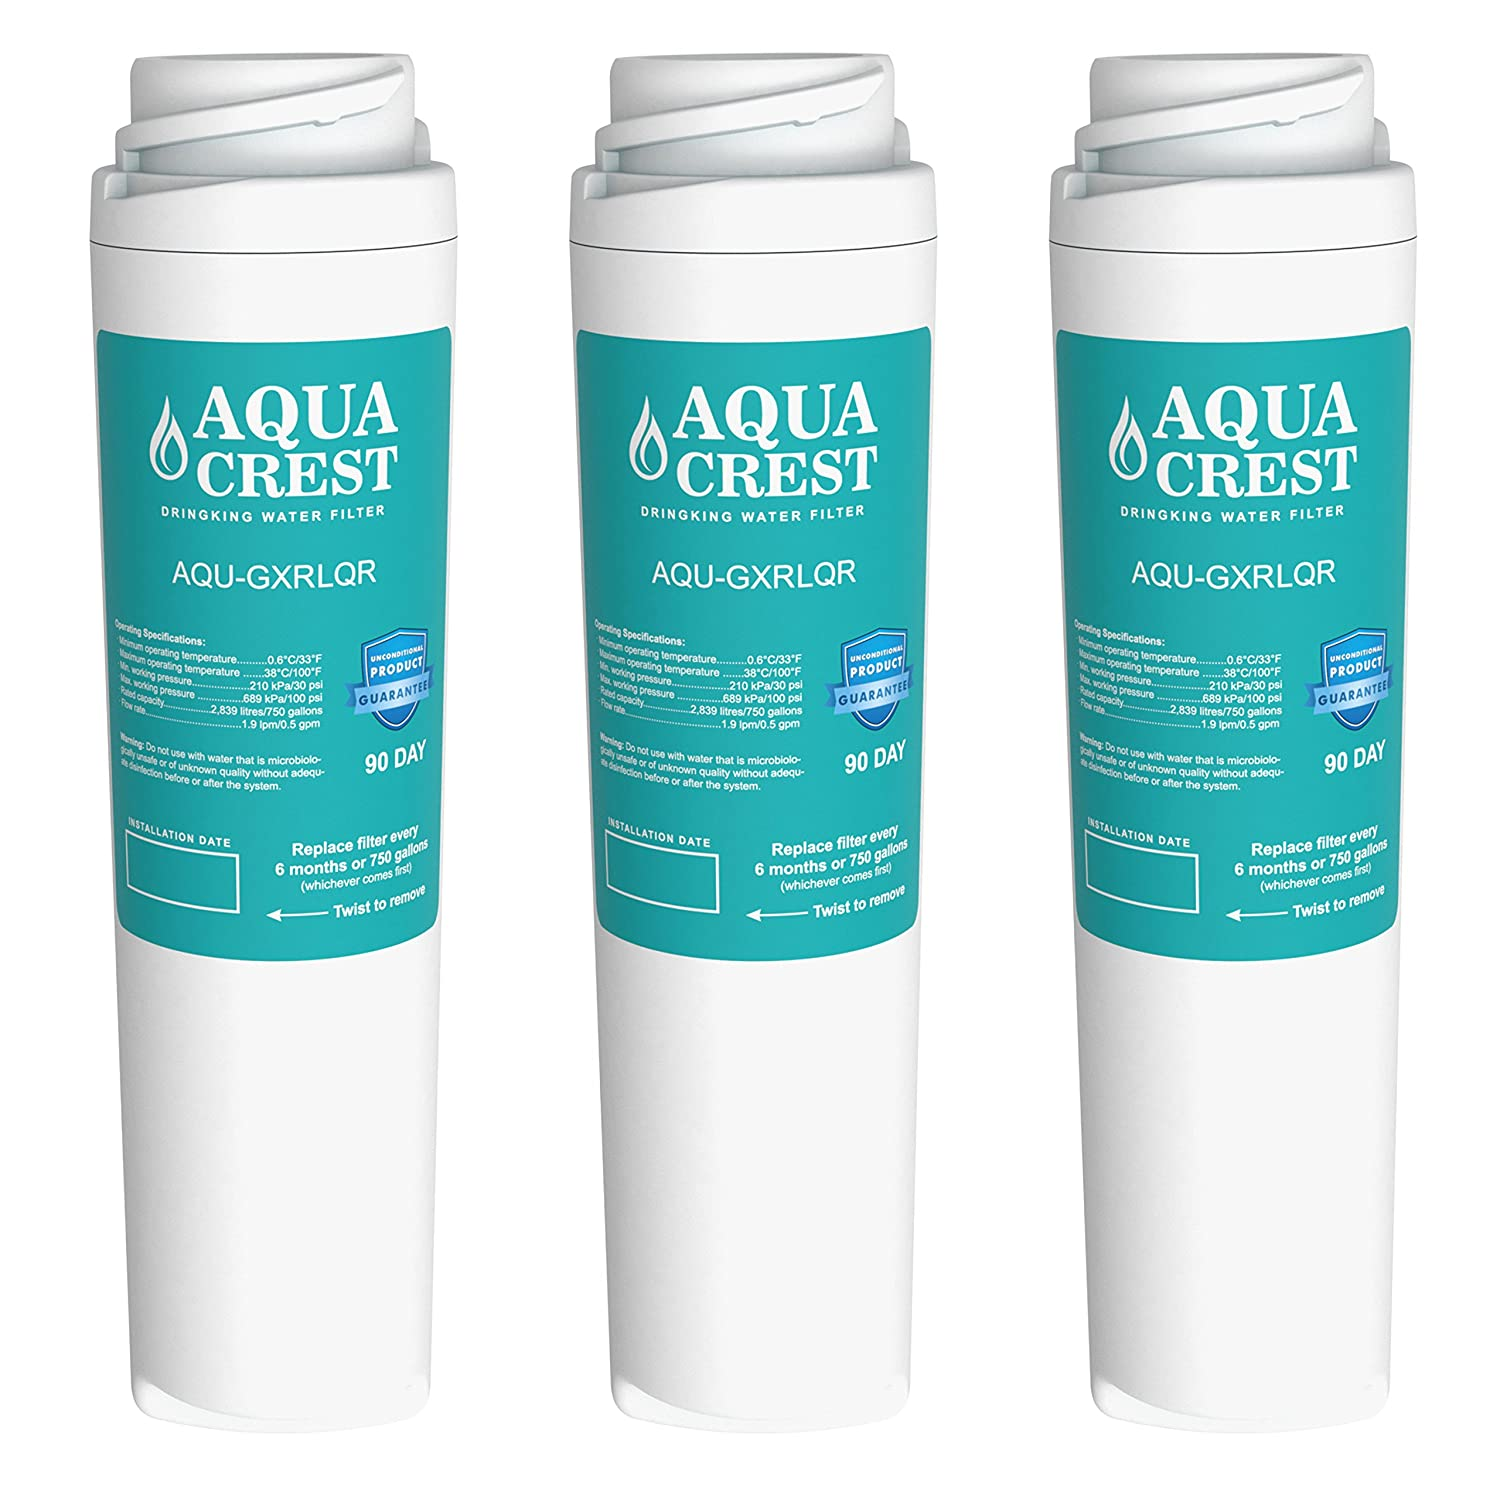 Aquacrest water filter replacement for ge gxrlqr 3 pack for Water feature filtration system